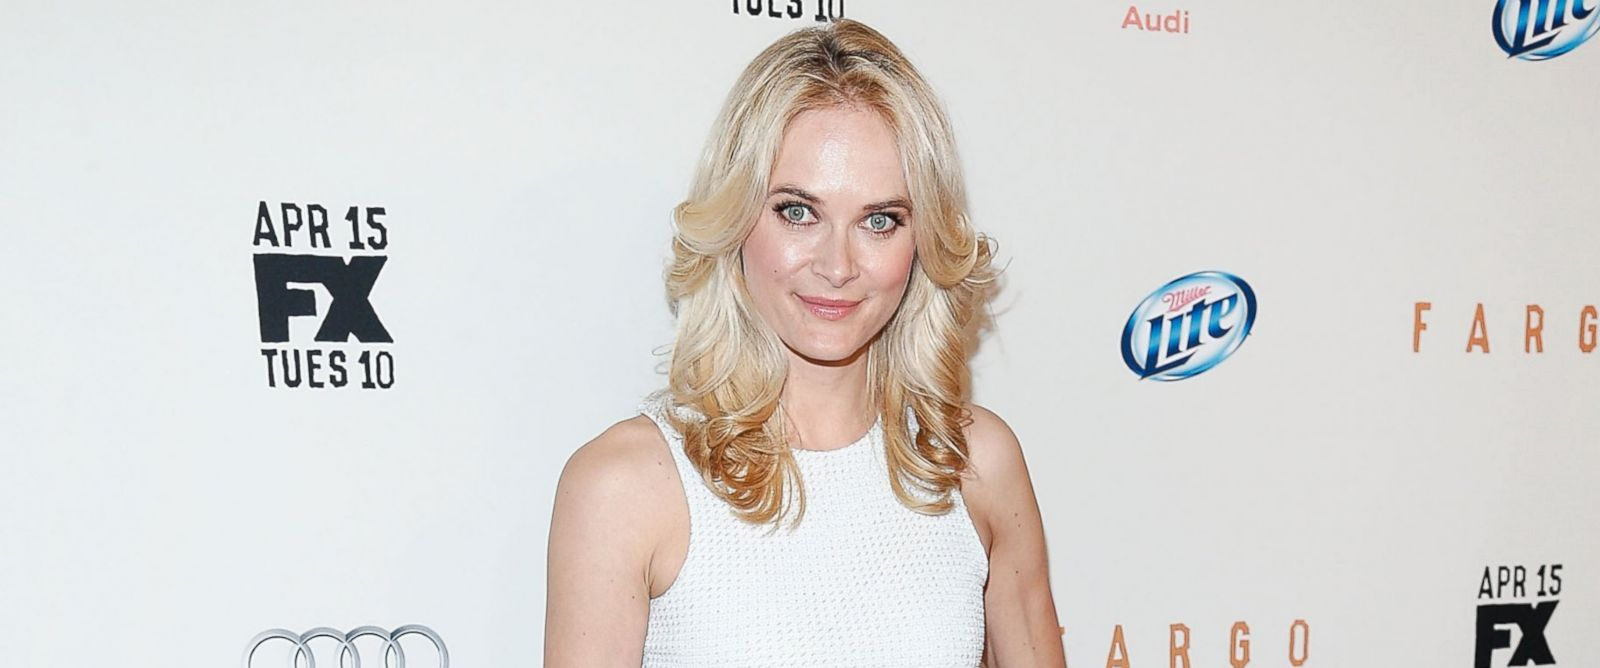 "PHOTO: Actress Rachel Blanchard attends the FX Networks Upfront screening of ""Fargo"" at SVA Theater on April 9, 2014 in New York City."